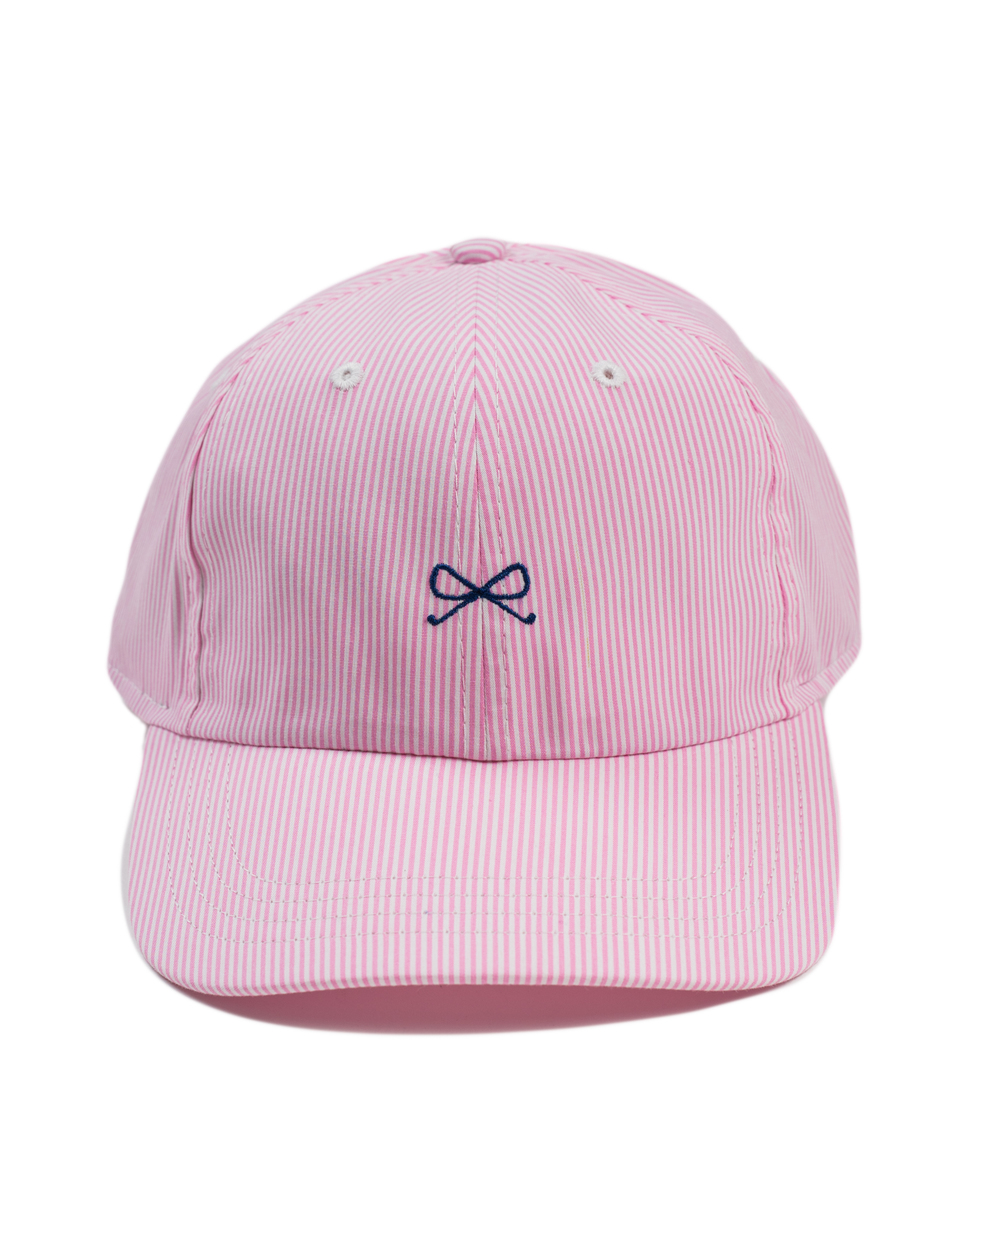 SE Hat in White/Pink with navy logo